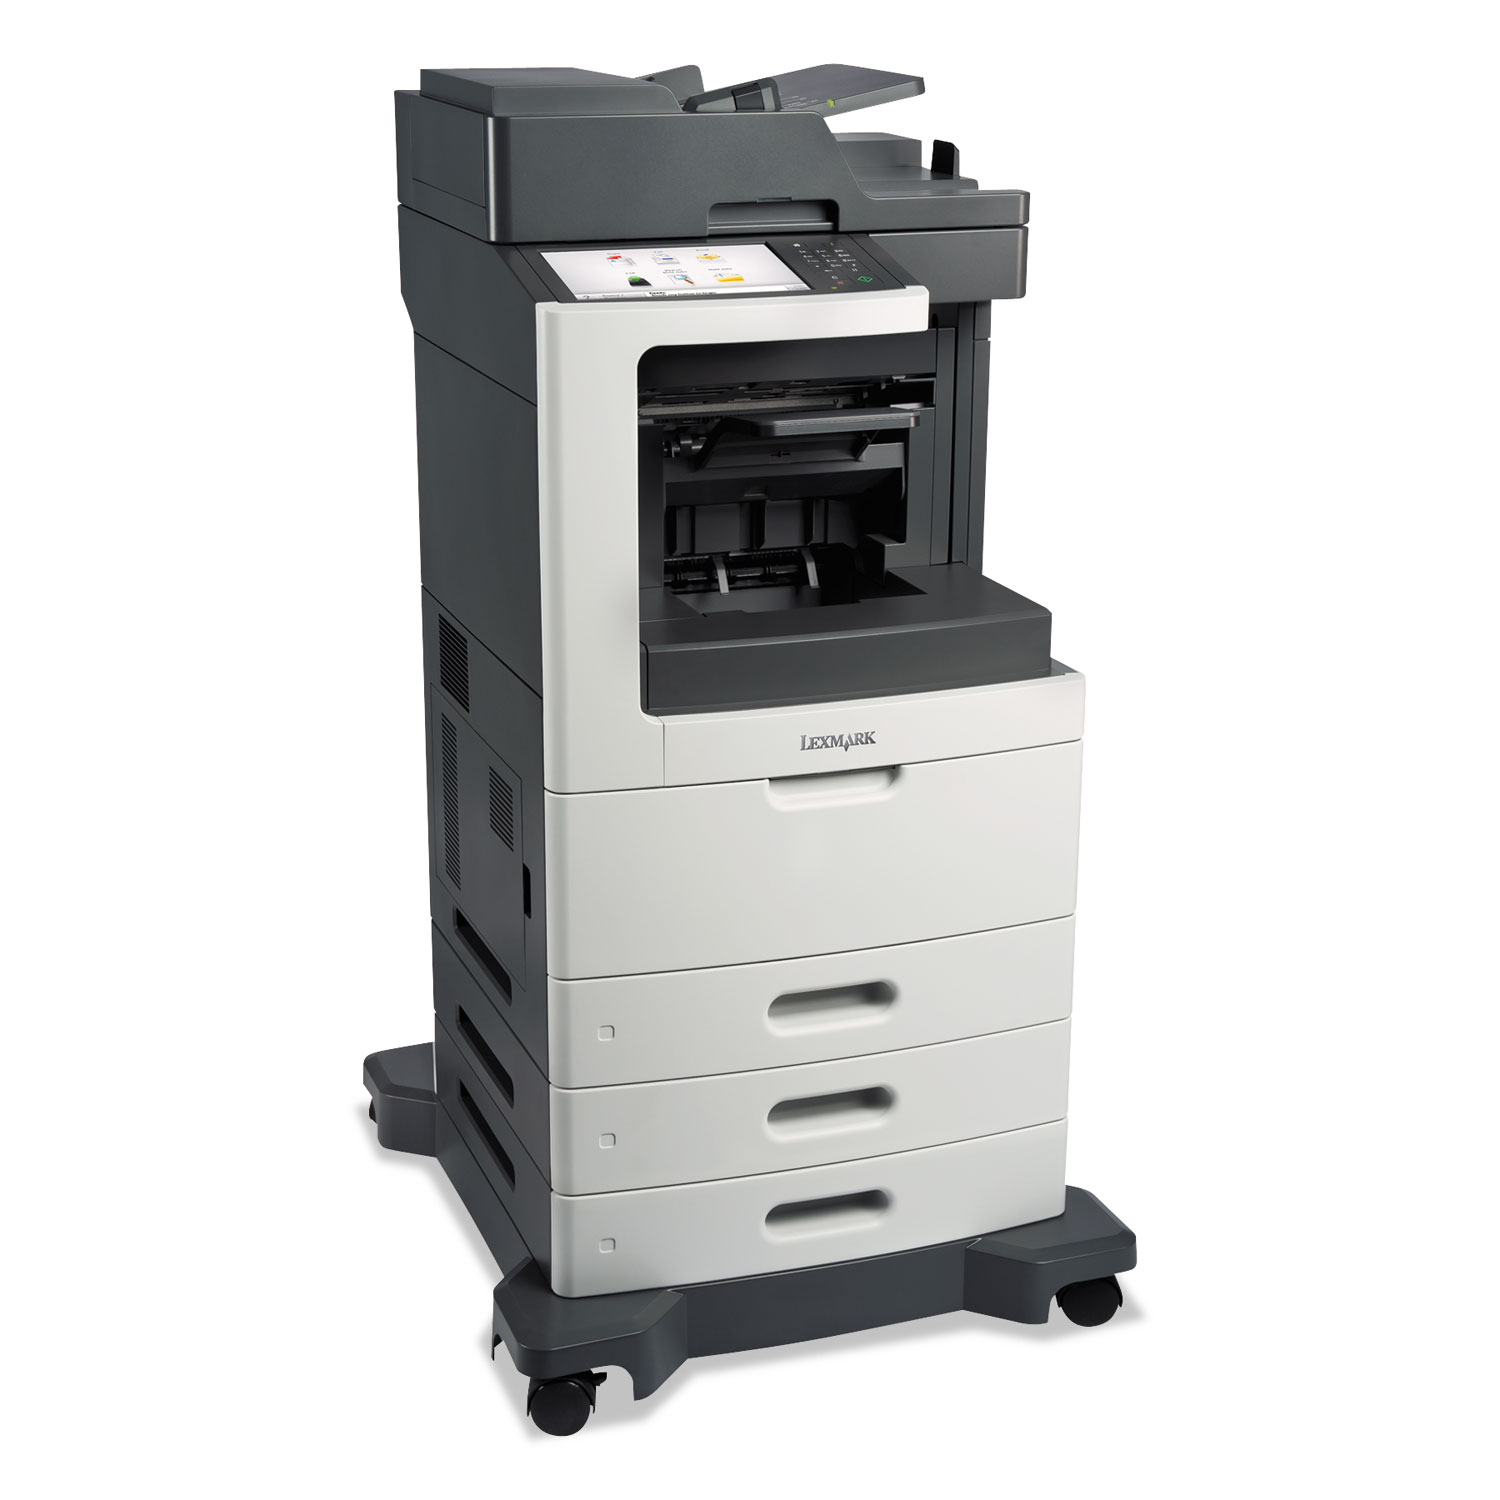 MX810dtfe Multifunction Laser Printer, Copy/Fax/Print/Scan